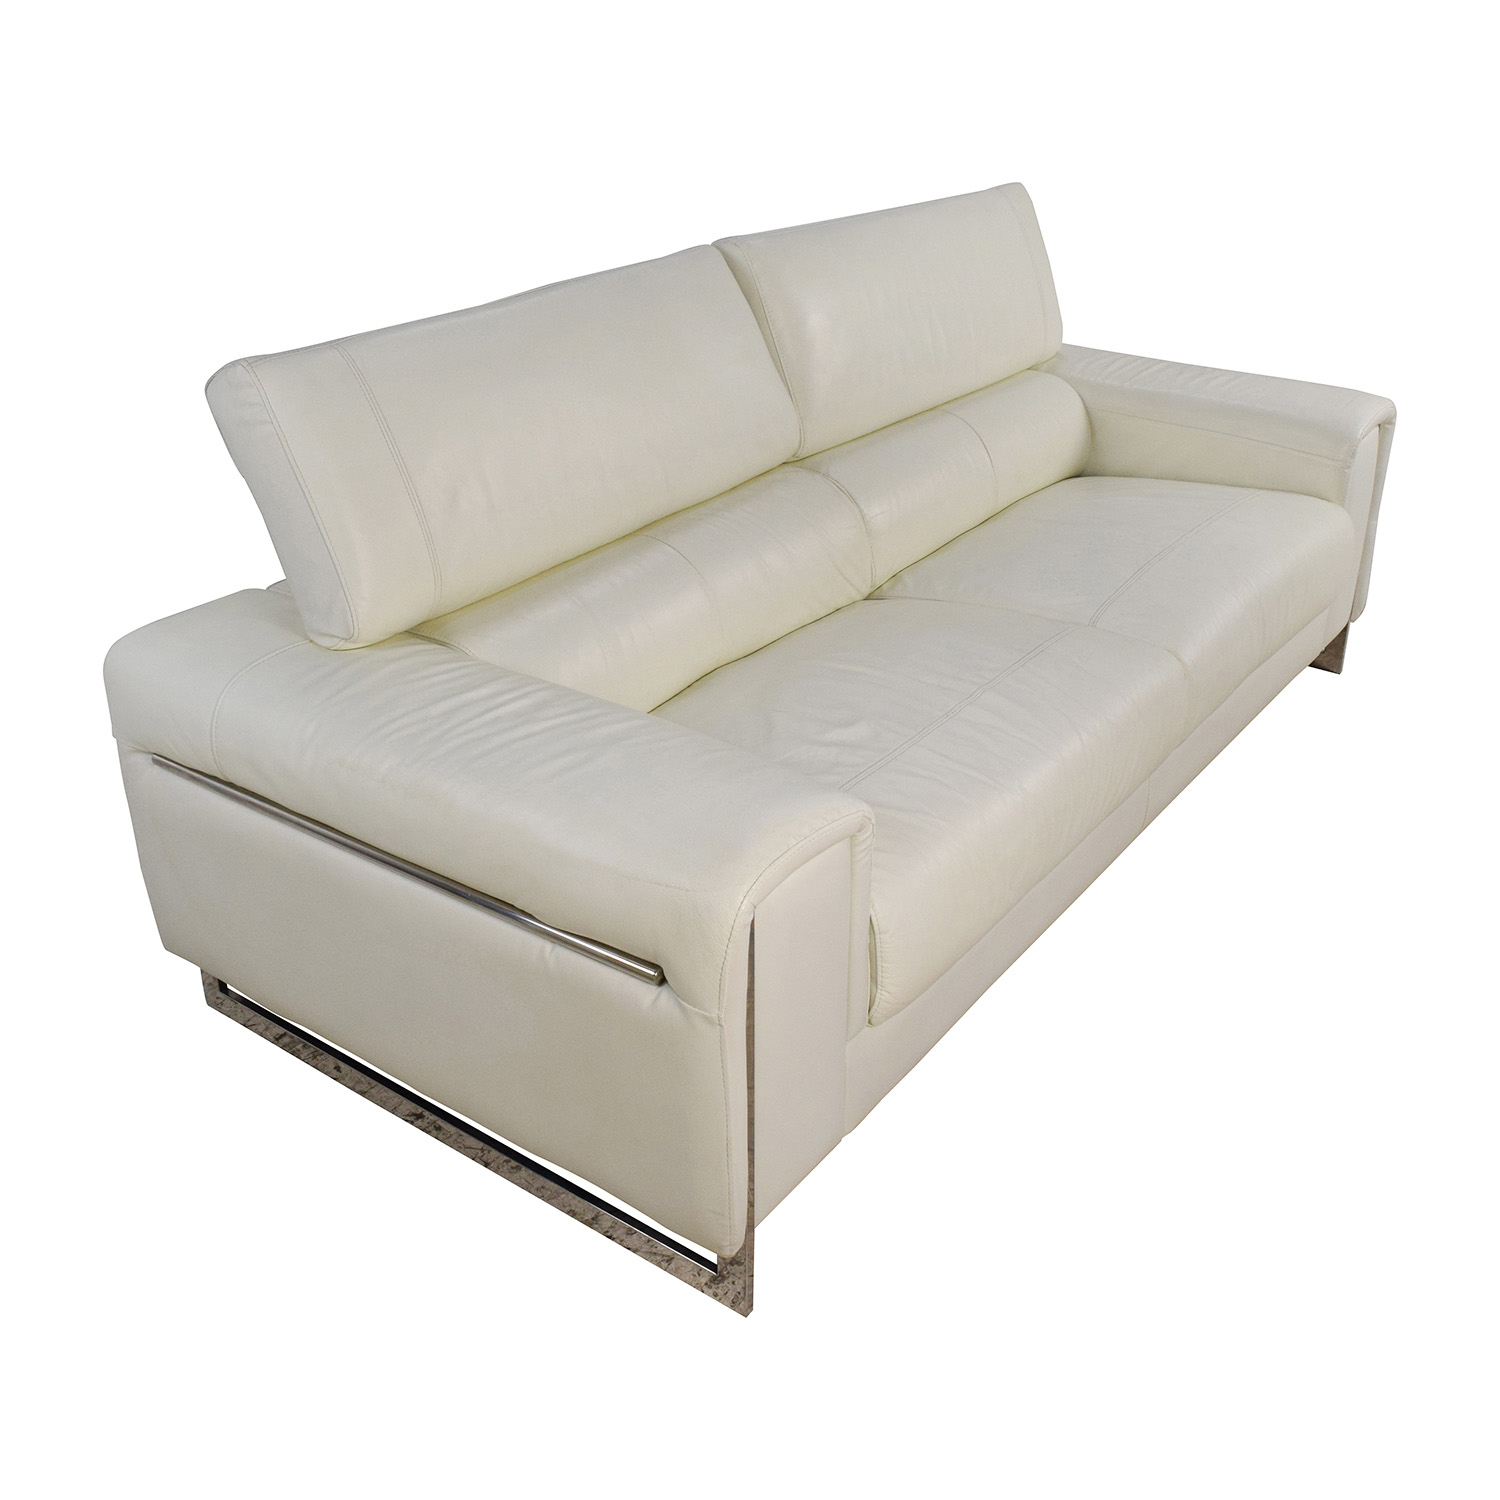 j m paquet sofa sagging support reviews 64 off jnm and soho white leather sofas